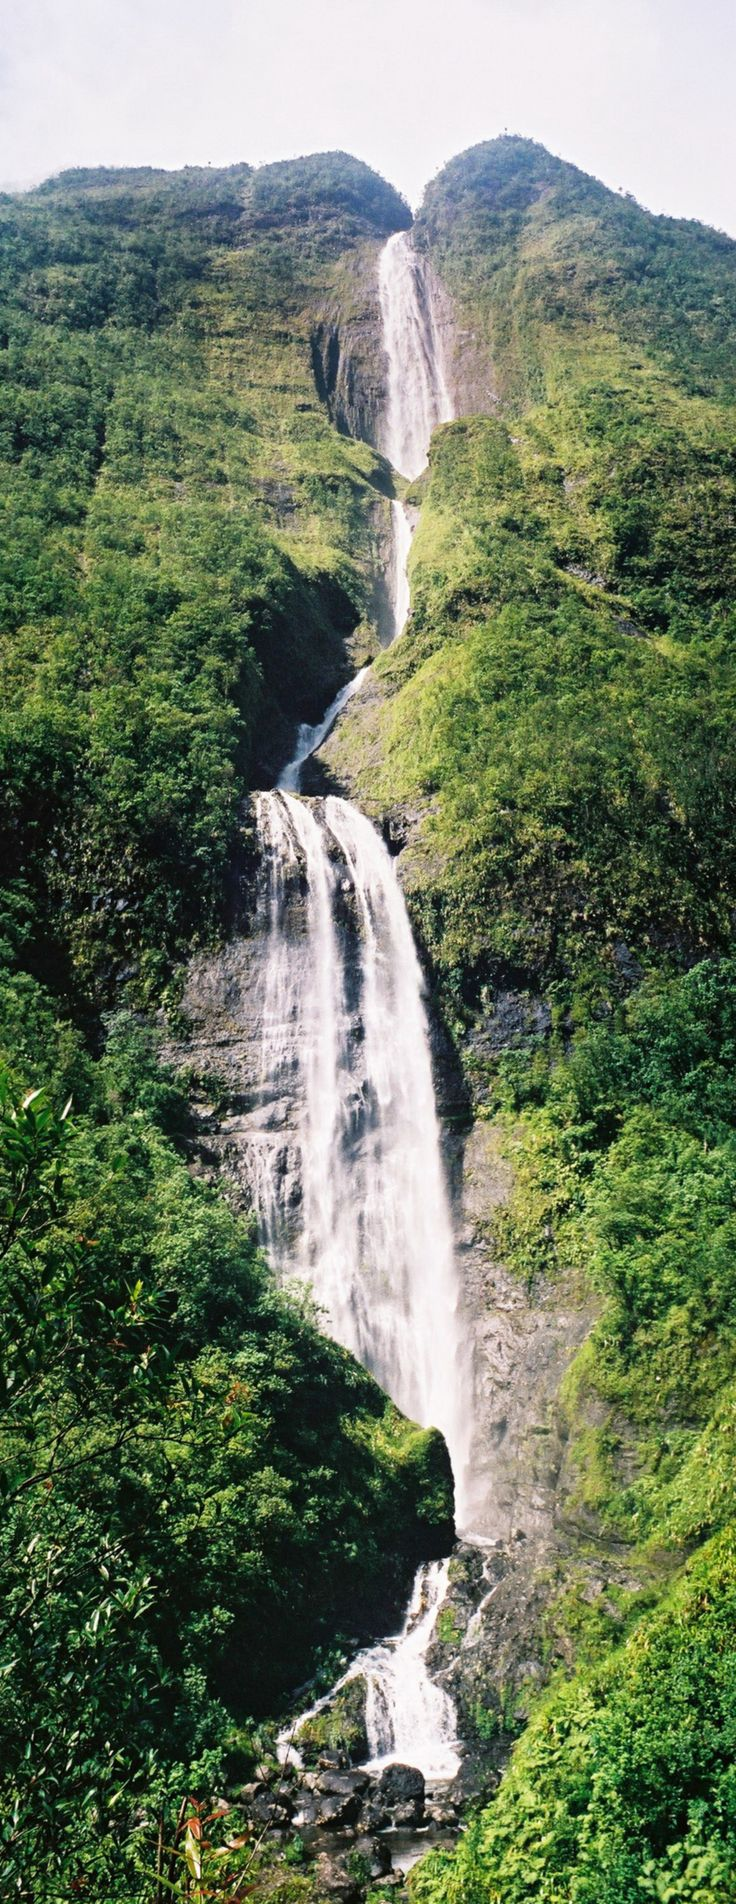 Waterfall in the cirque of Salazie (Réunion Island) © Daniel Gibert